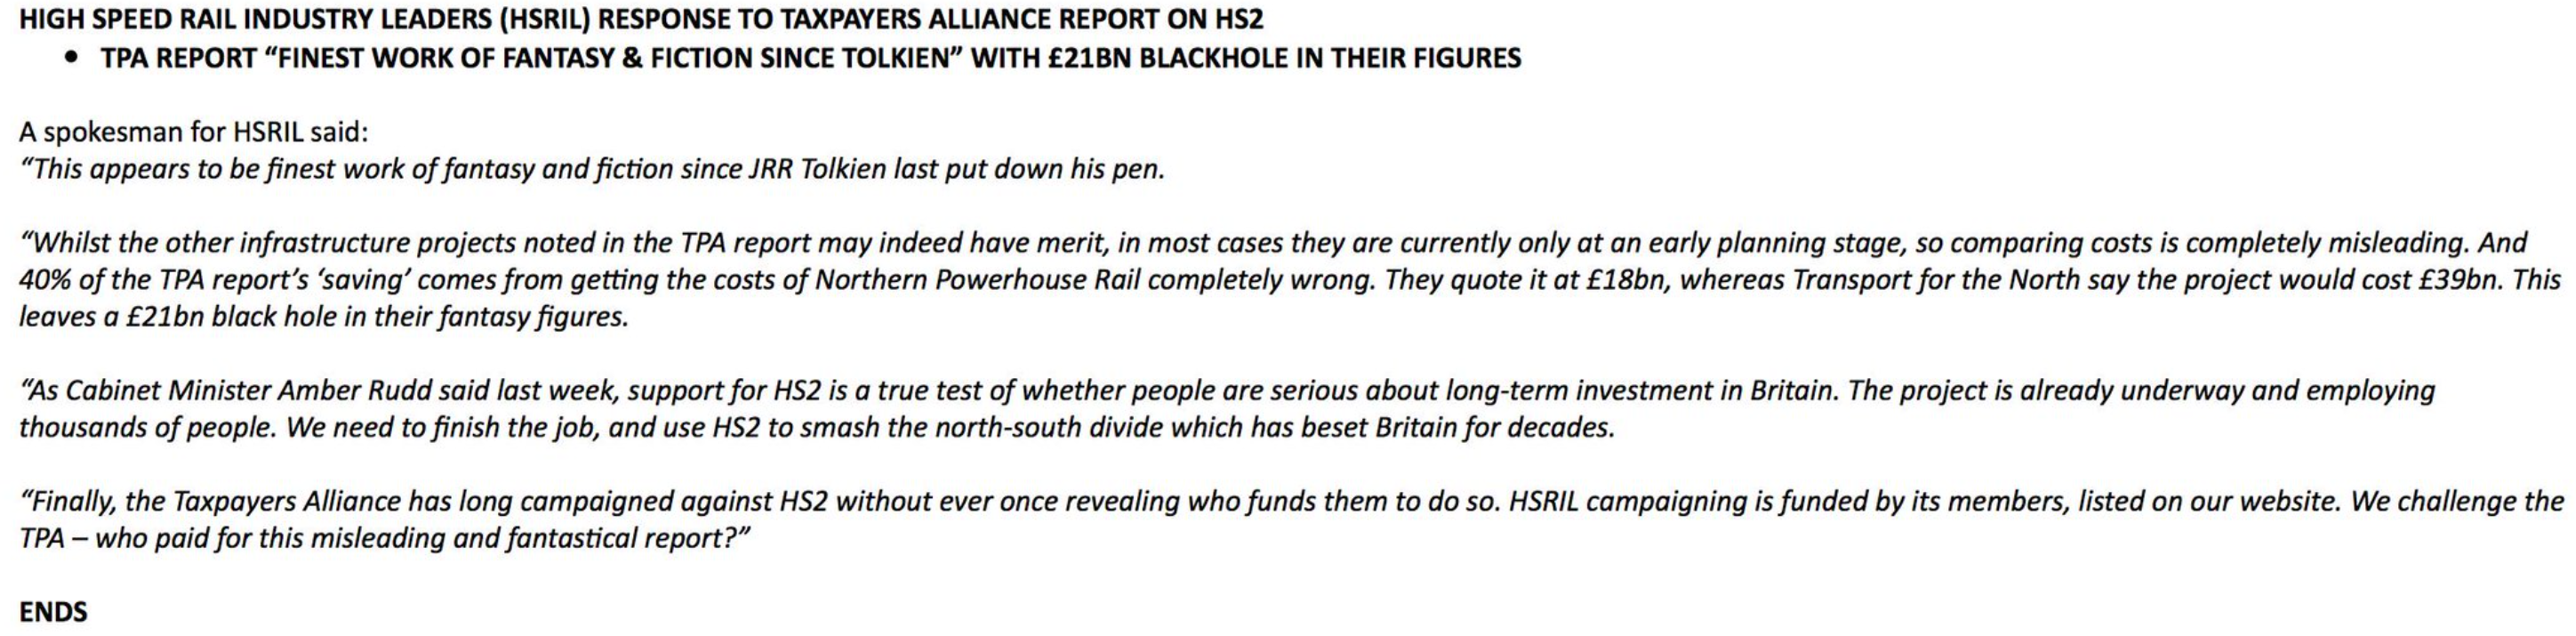 HSRIL statement